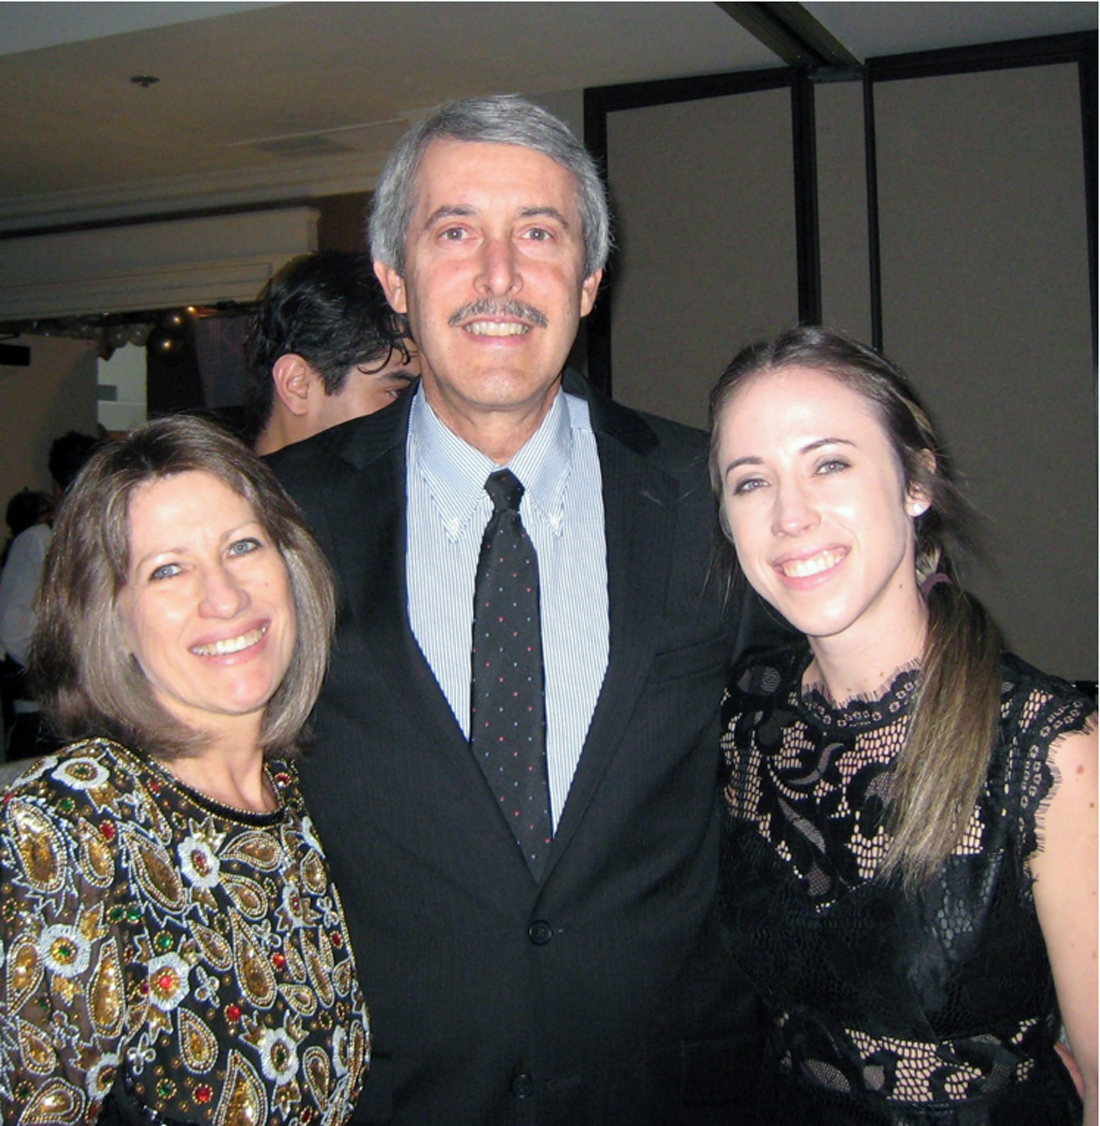 Downey Family YMCA honoree Charles Gregorio, wife Melody, and daughter Emily. Photo by Lorine Parks